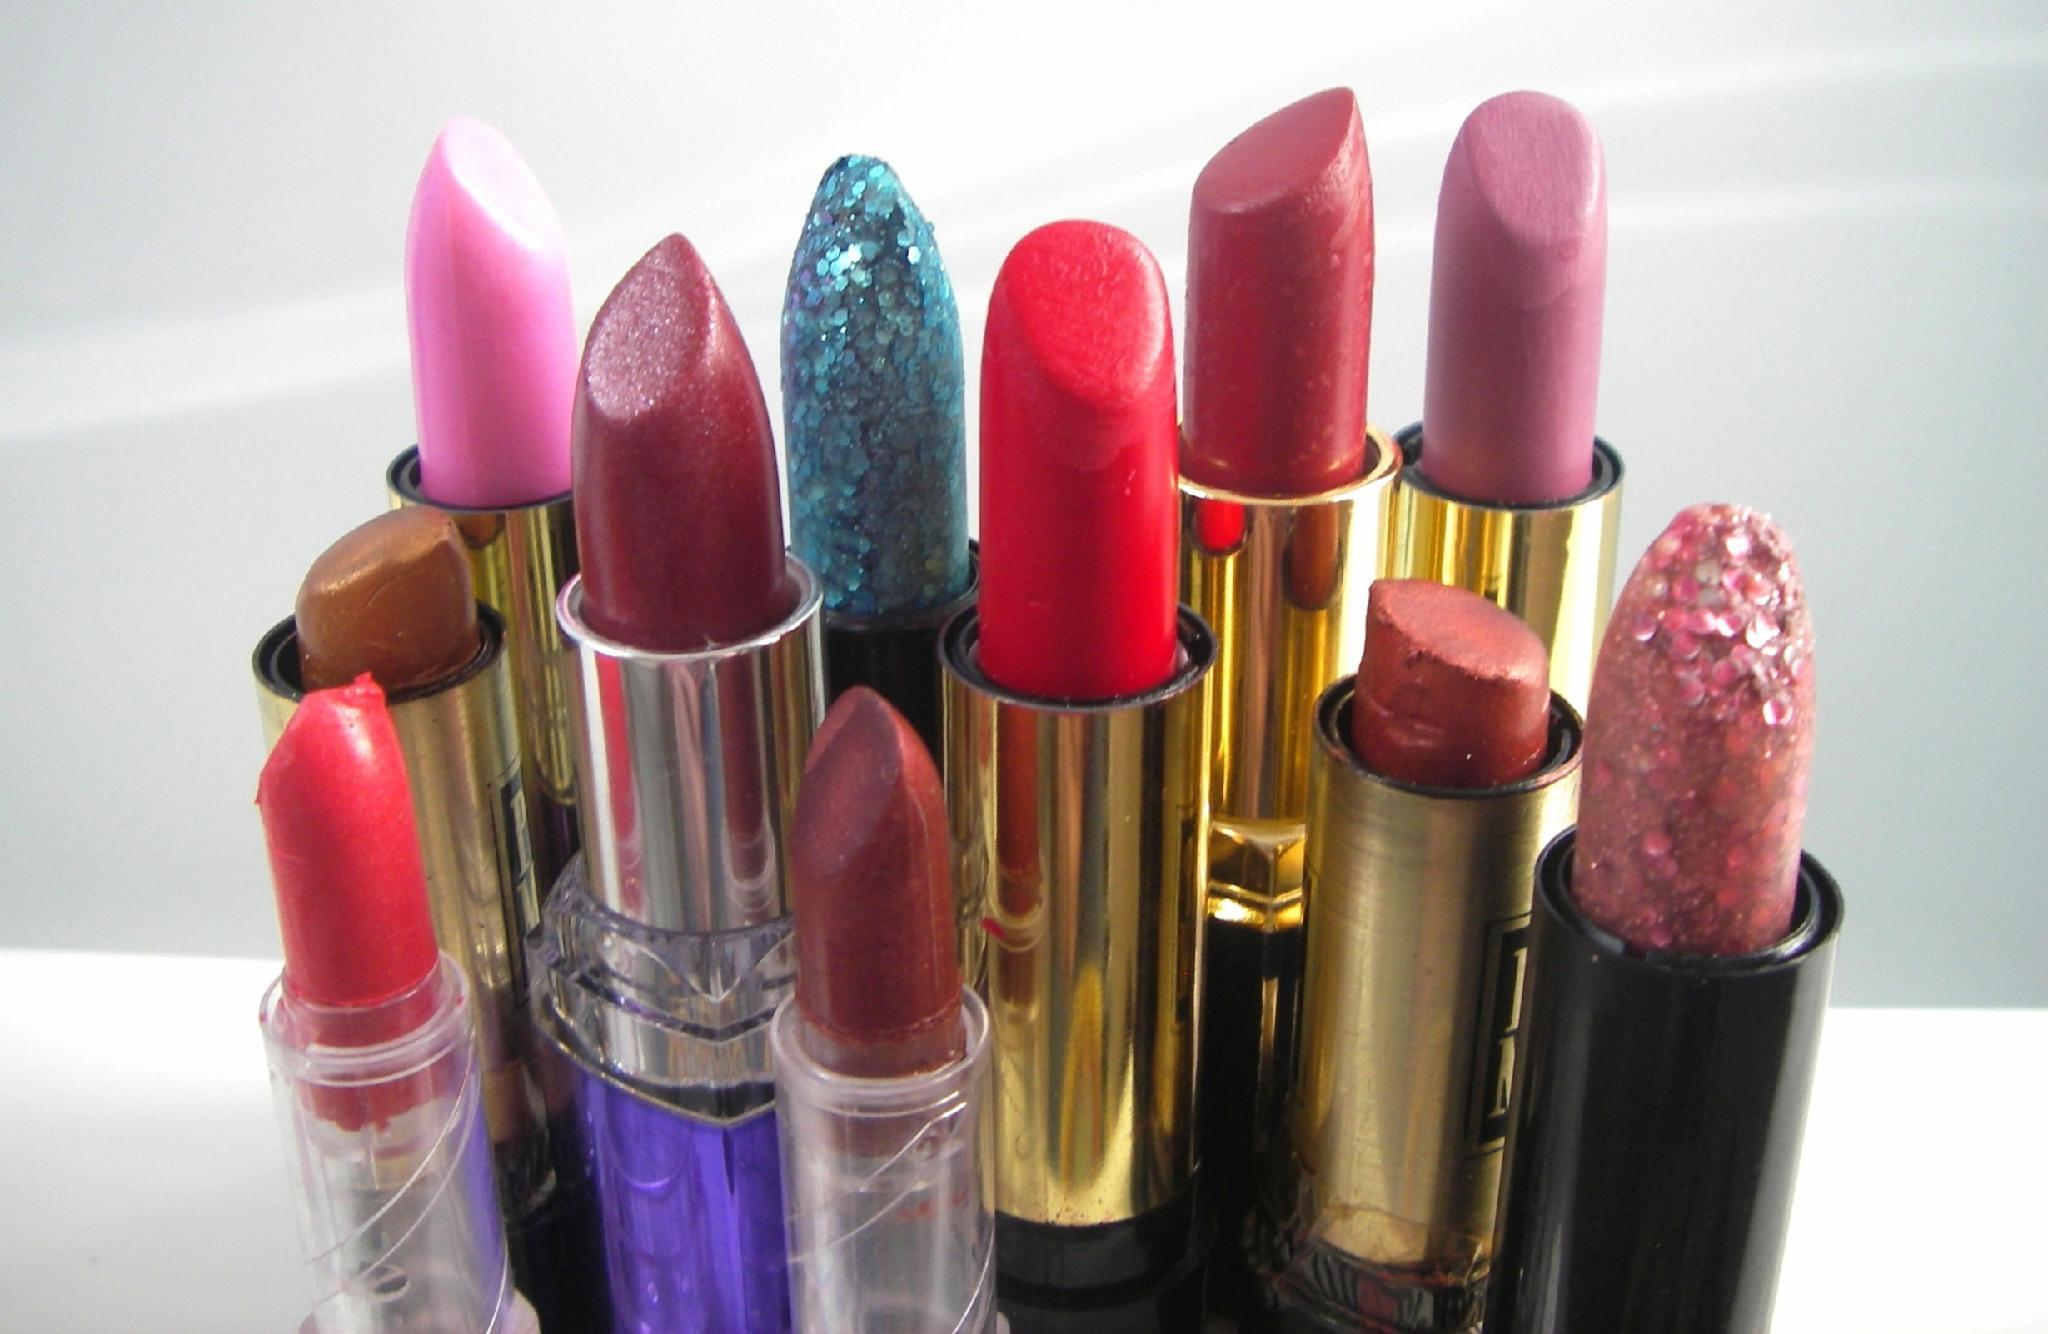 What's your favorite color lipstick to wear?